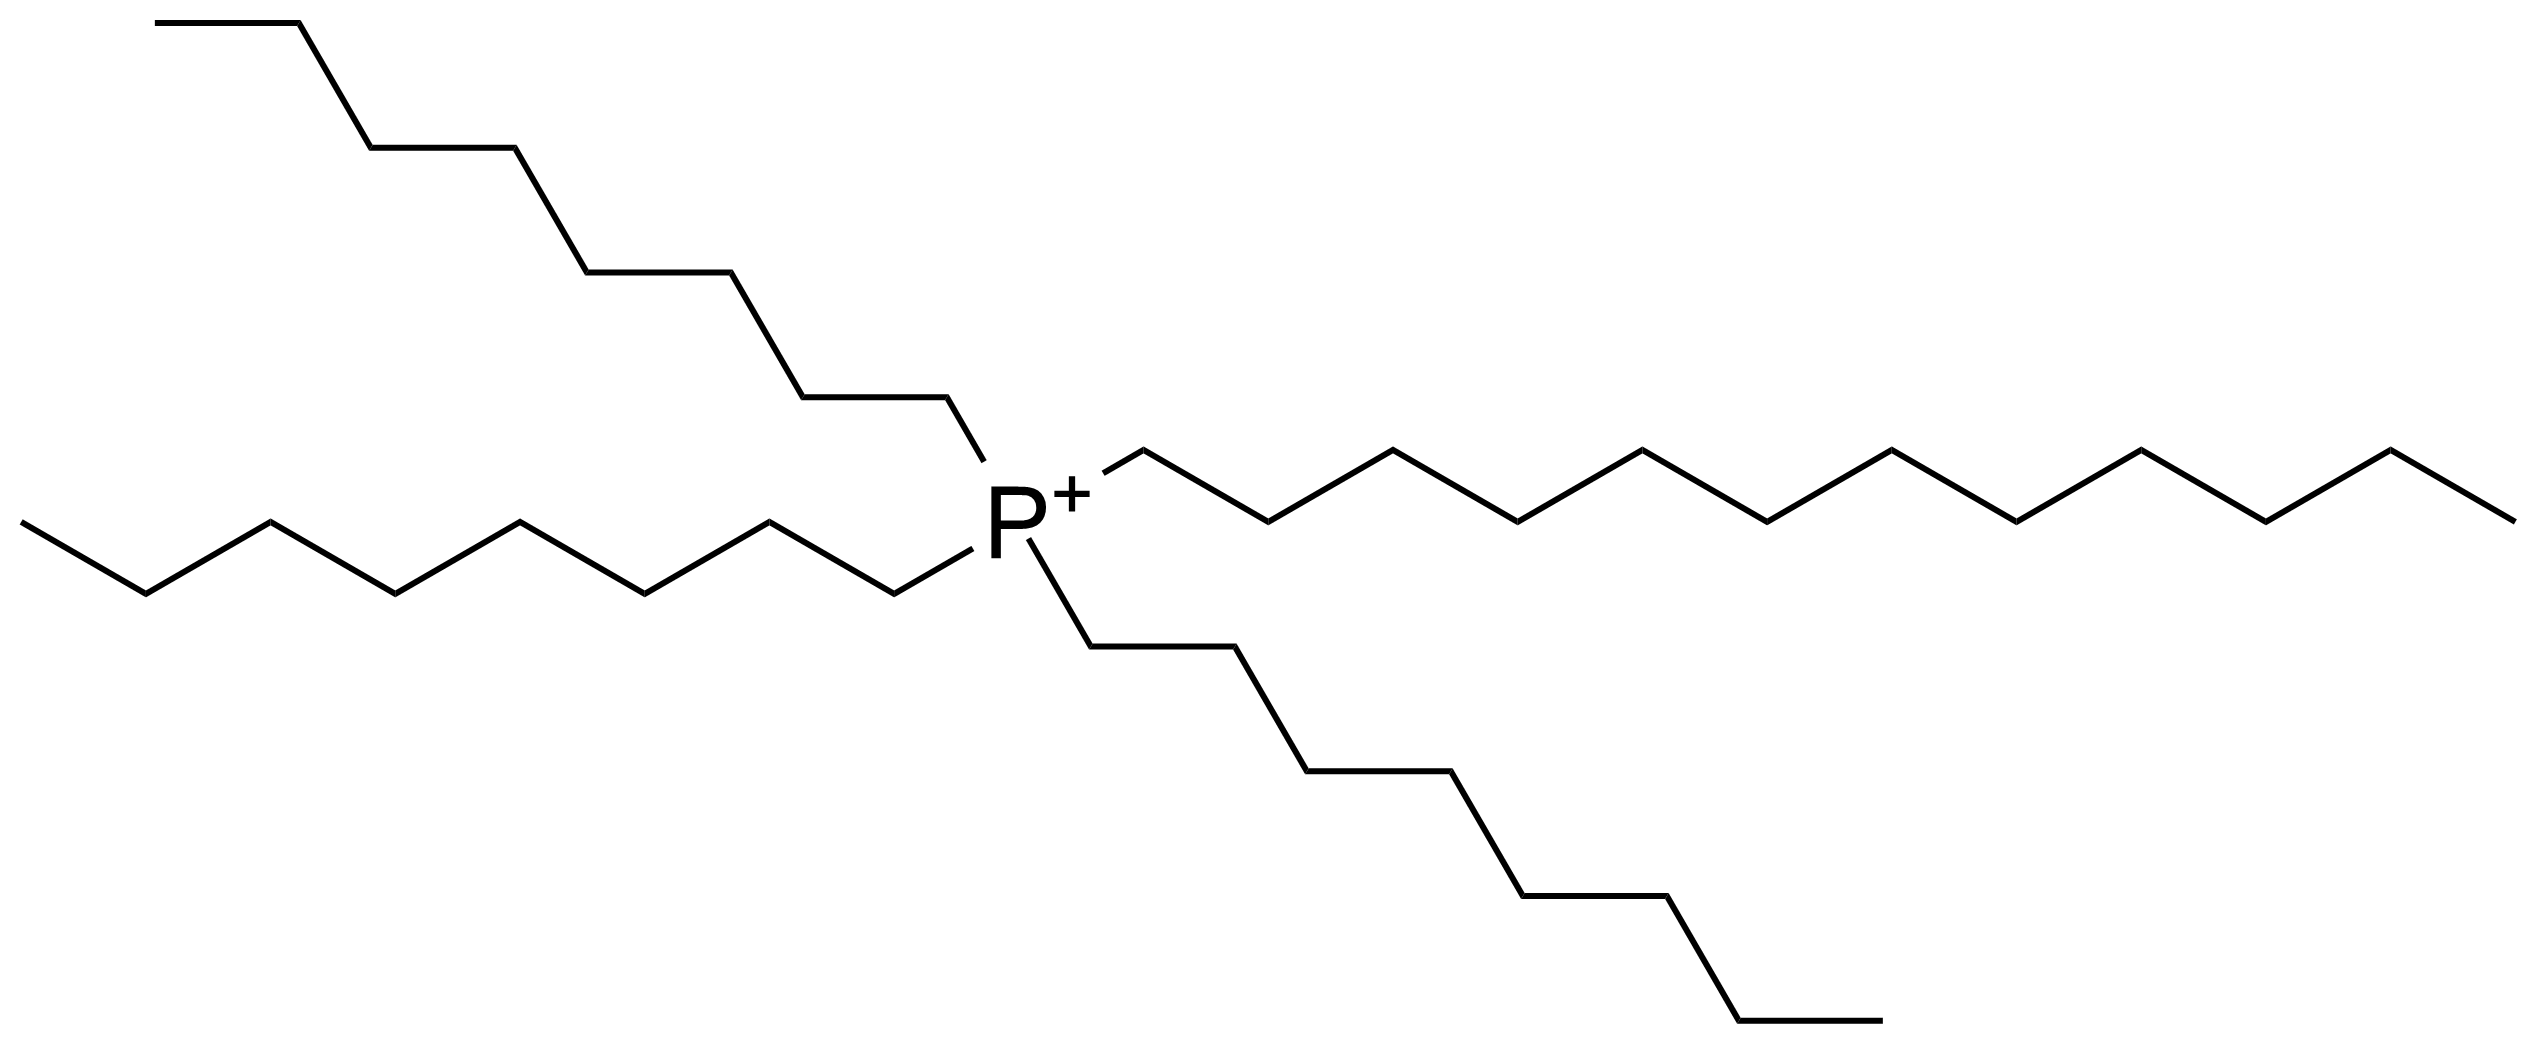 Structure of Trioctyldodecyl phosphonium chloride